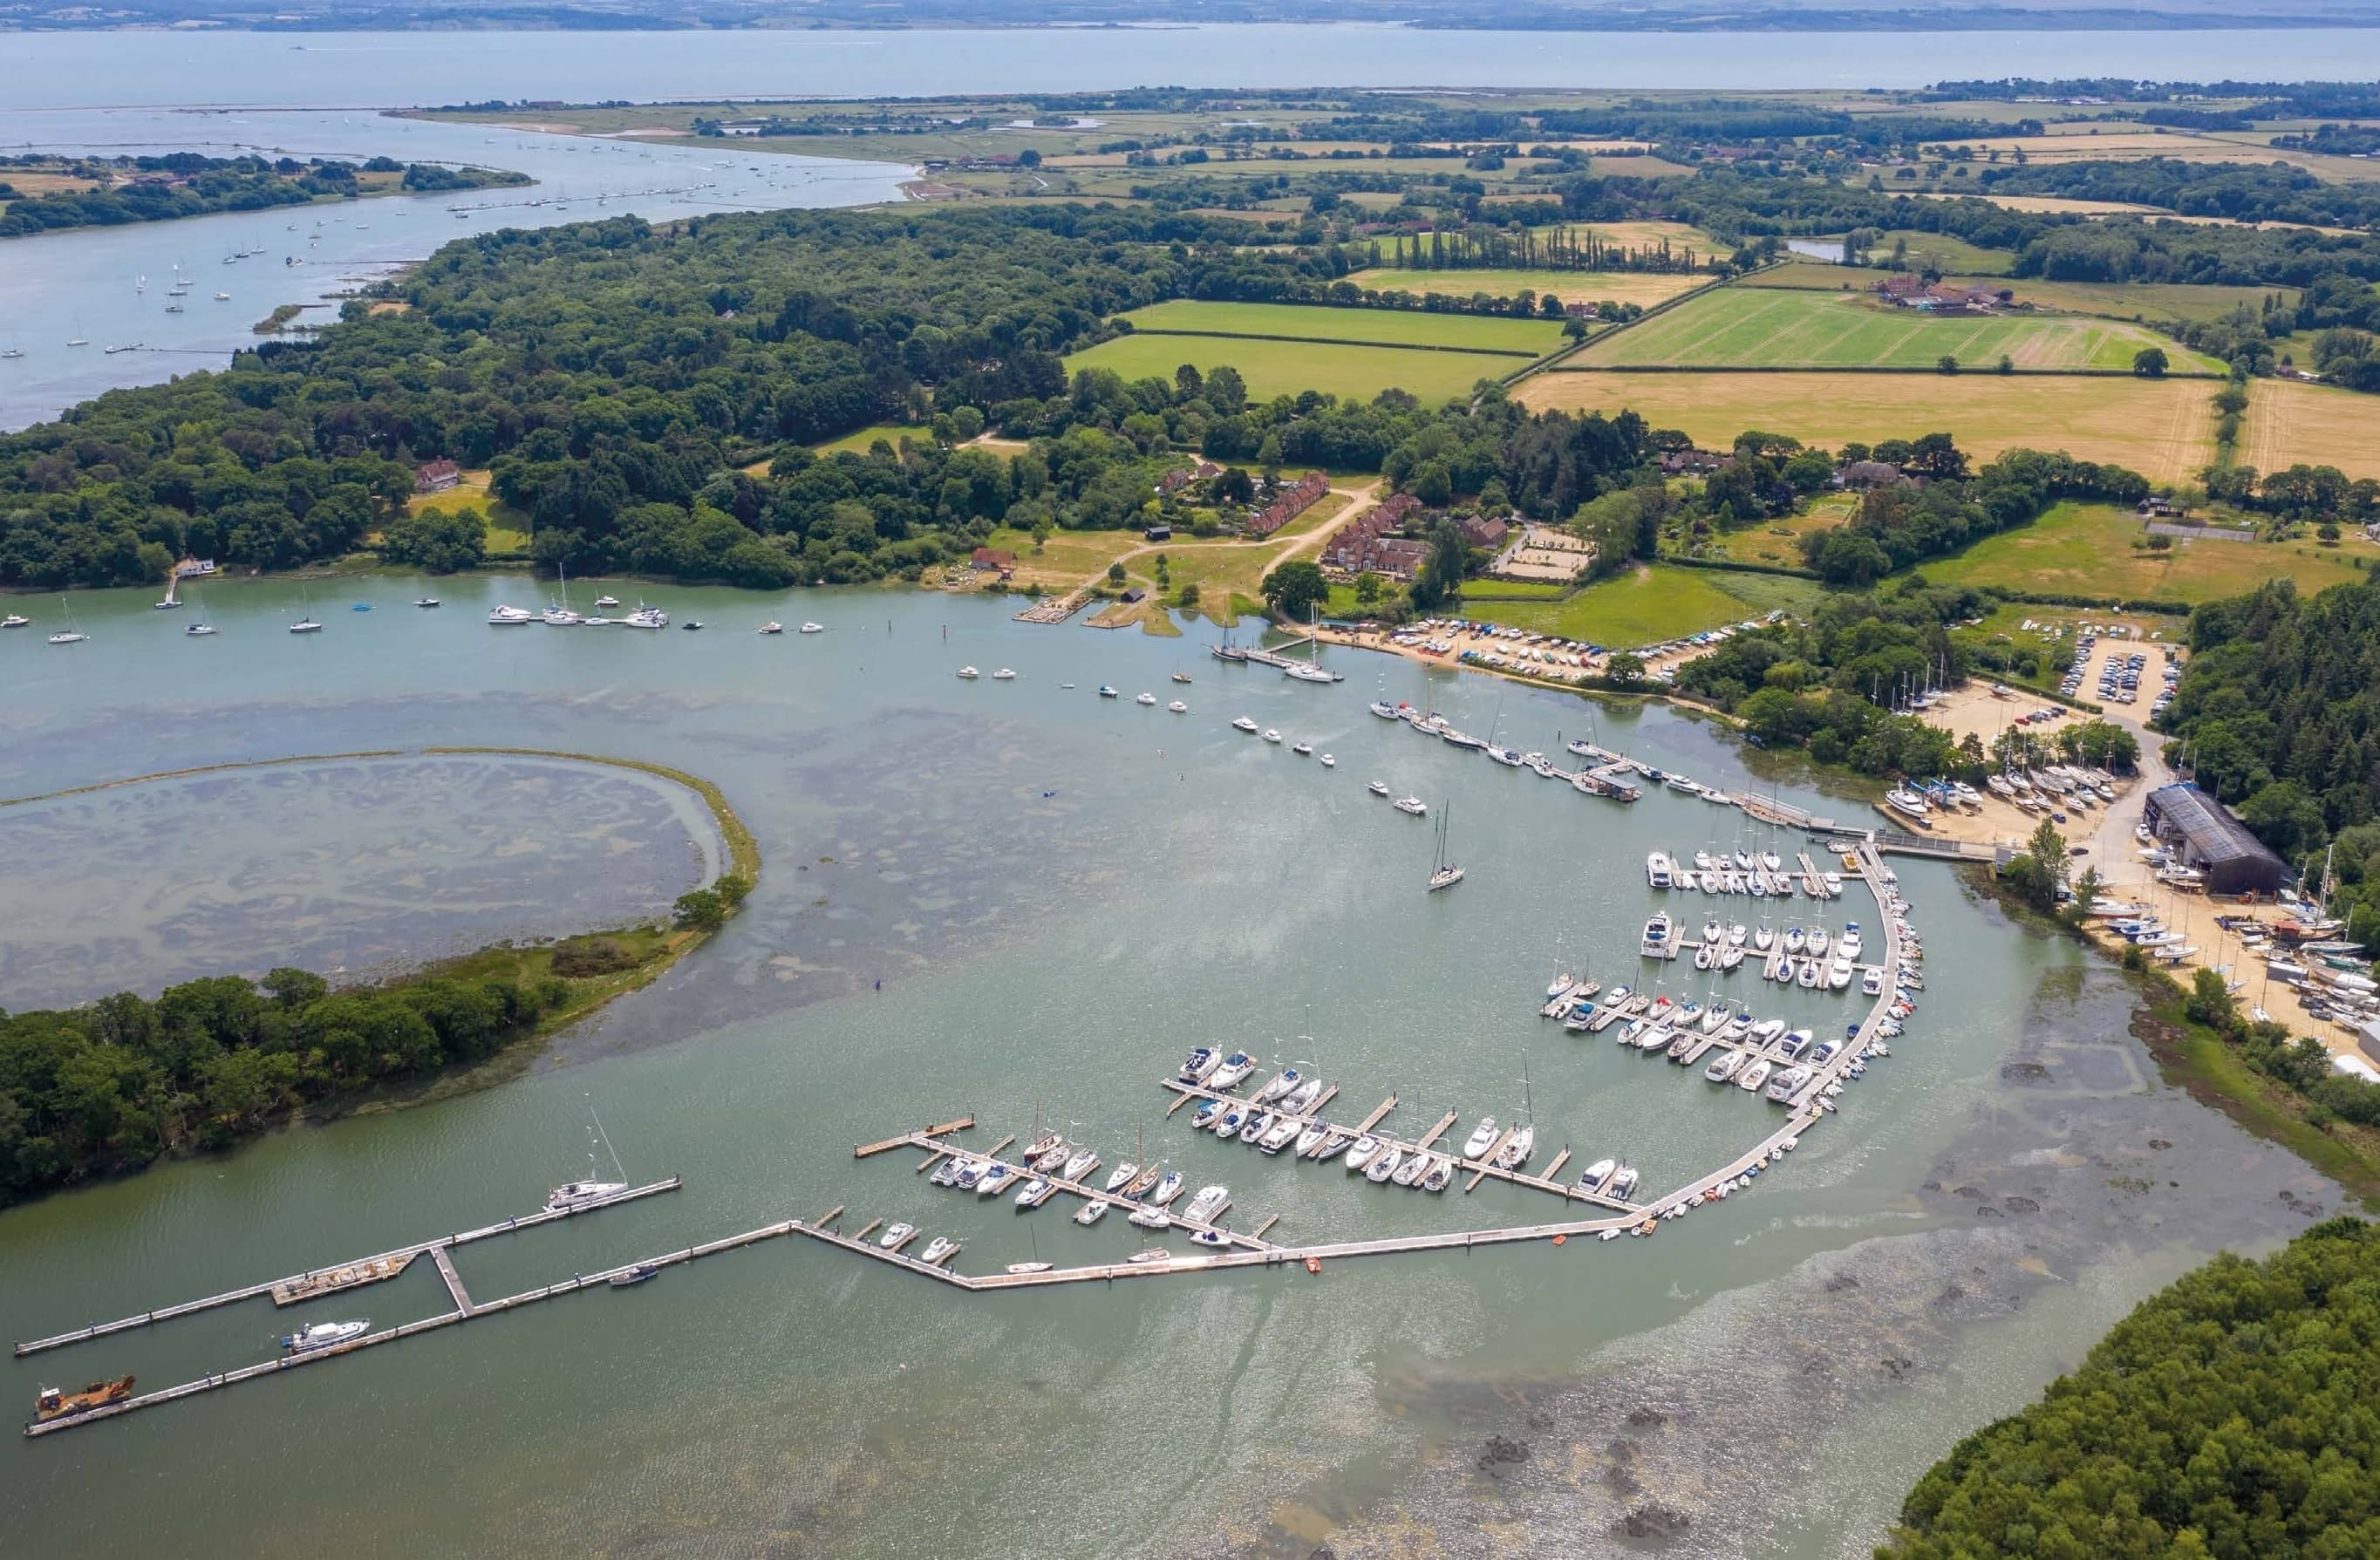 BUCKLER'S HARD YACHT HARBOUR